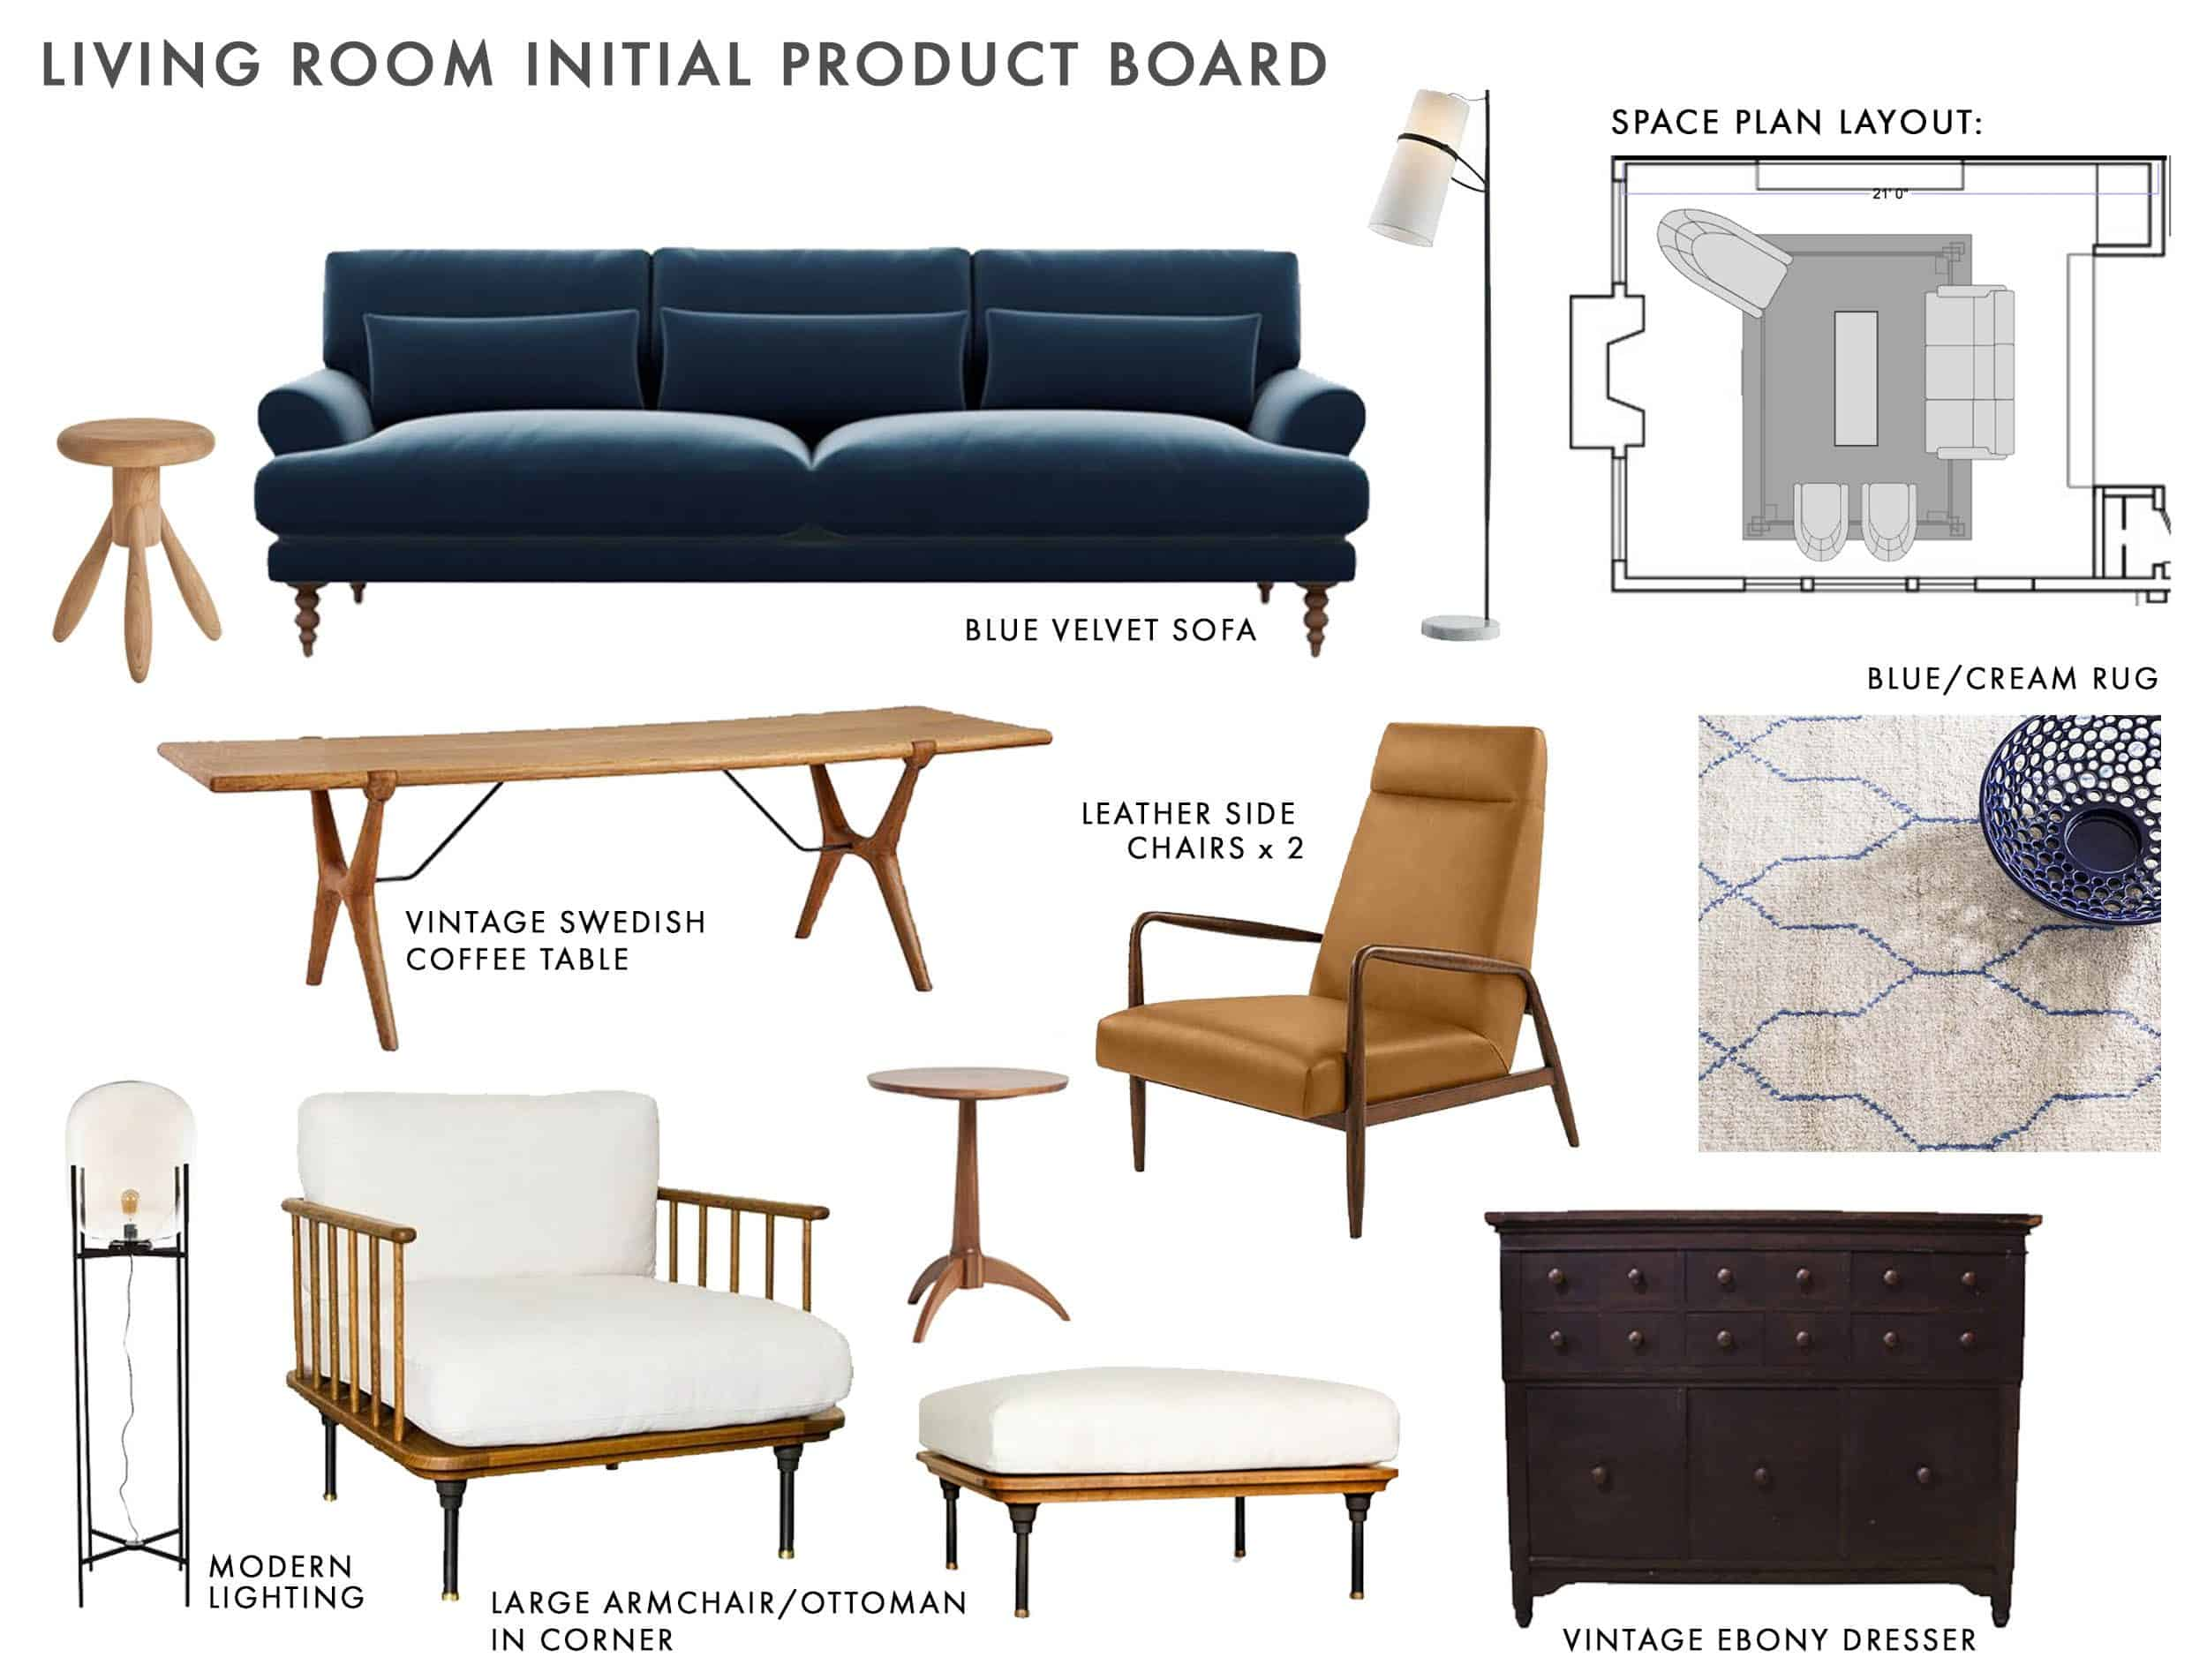 Living Room Initial Product Board